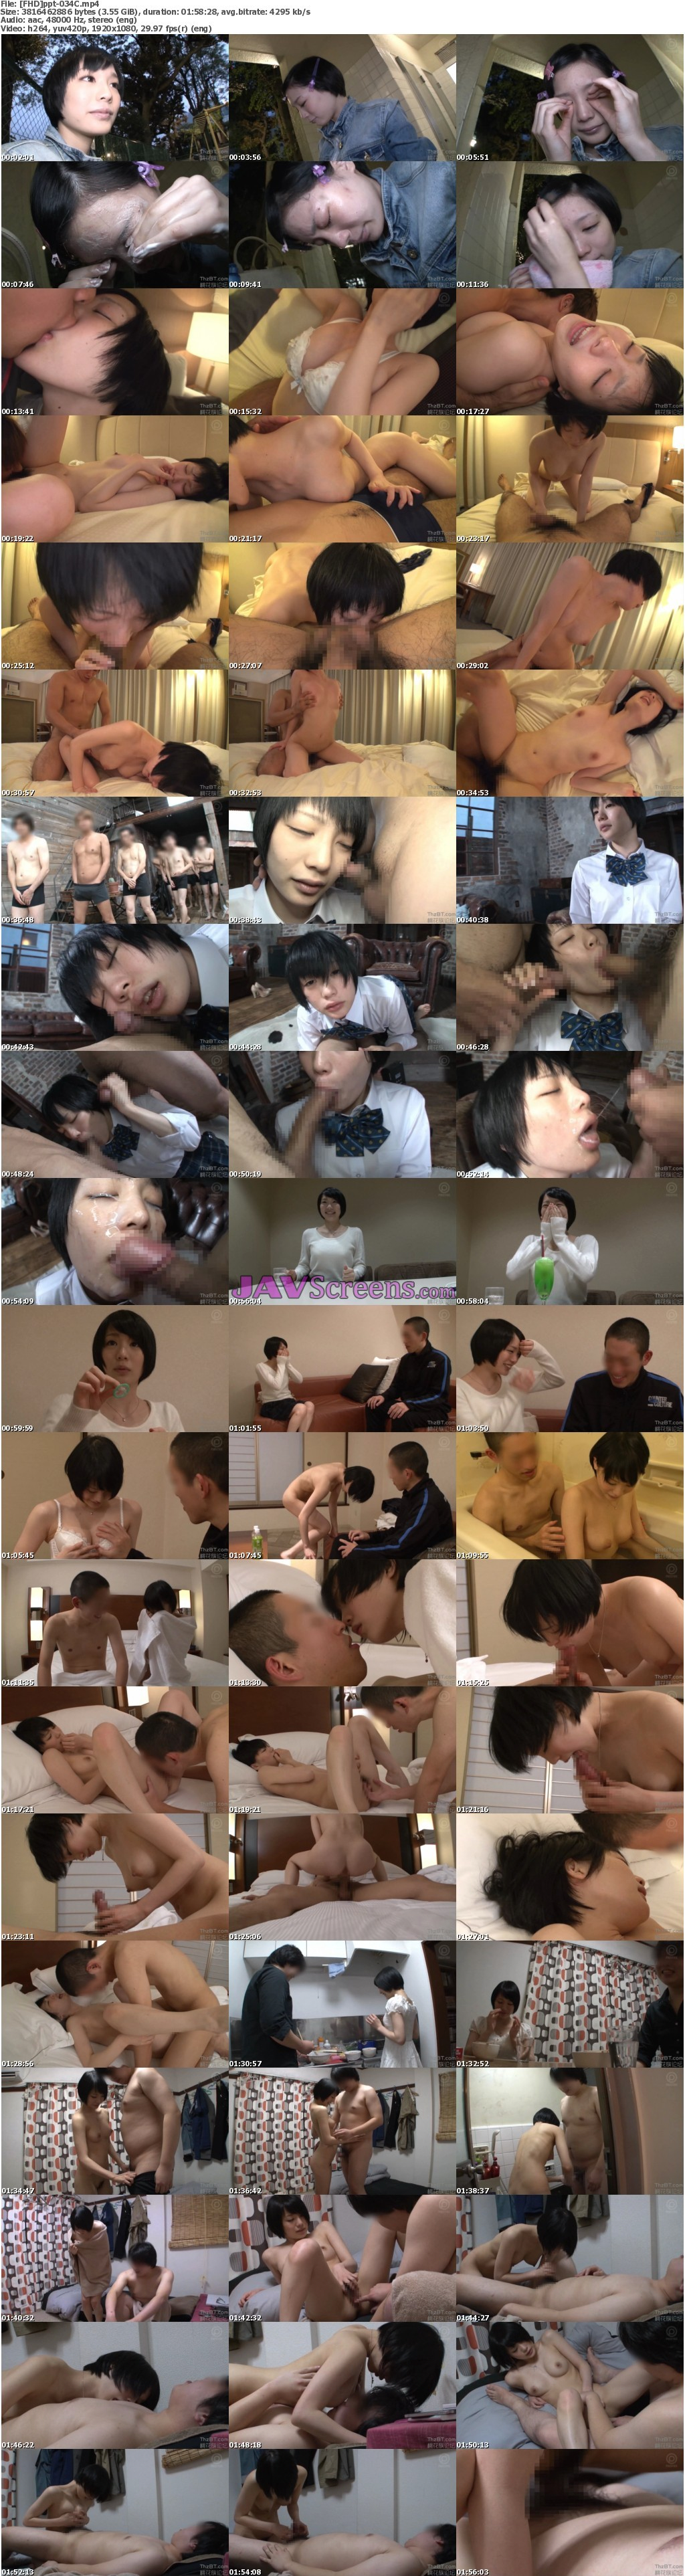 PPT-034C.jpg - JAV Screenshot